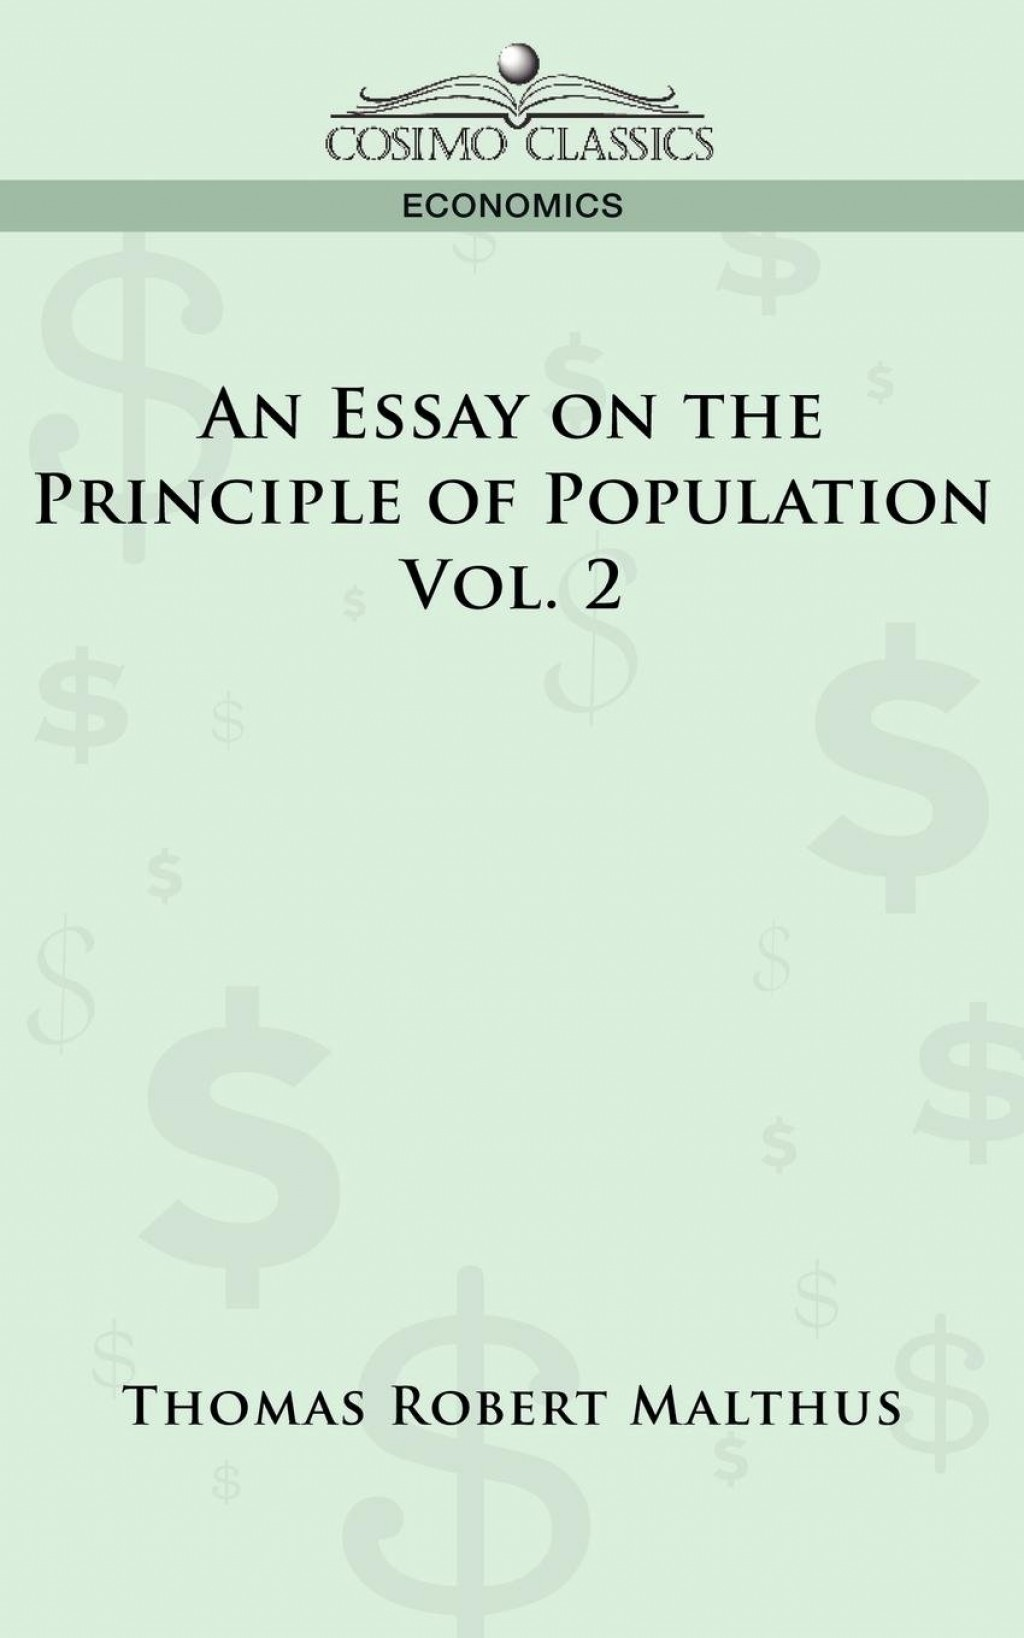 009 Essay On The Principle Of Population Example Singular Thomas Malthus Sparknotes Advocated Ap Euro Large